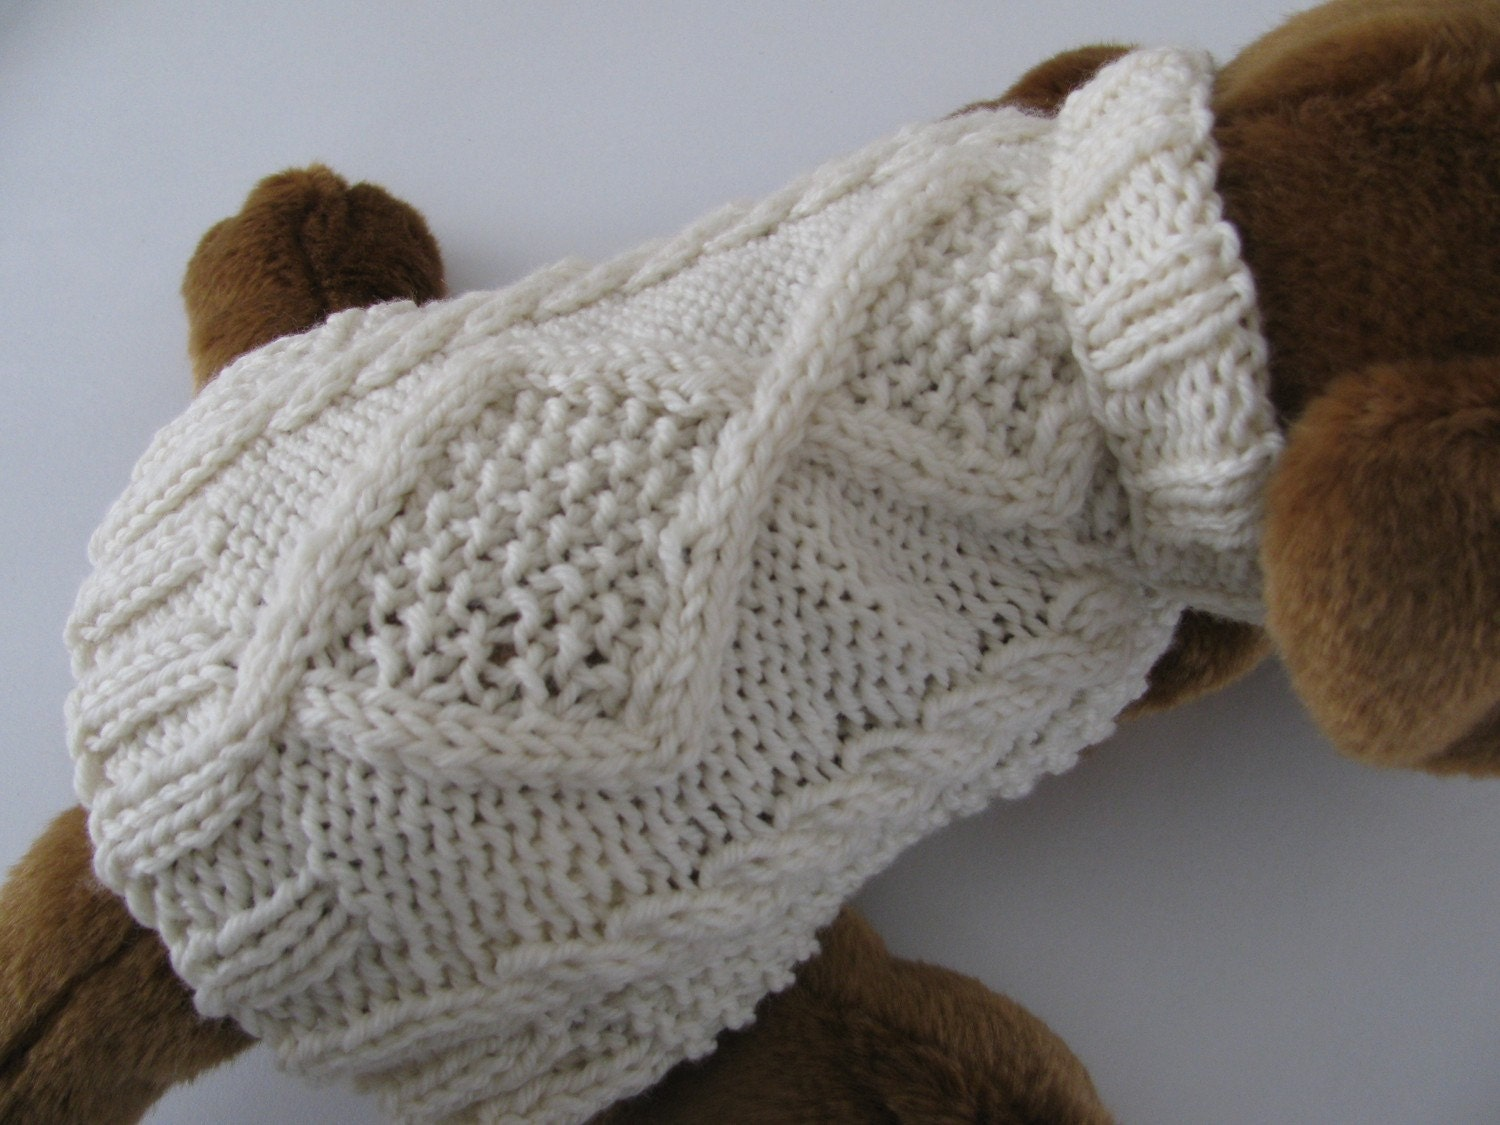 Knitted Patterns For Dog Sweaters : Knitted Dog Sweater Free Pattern